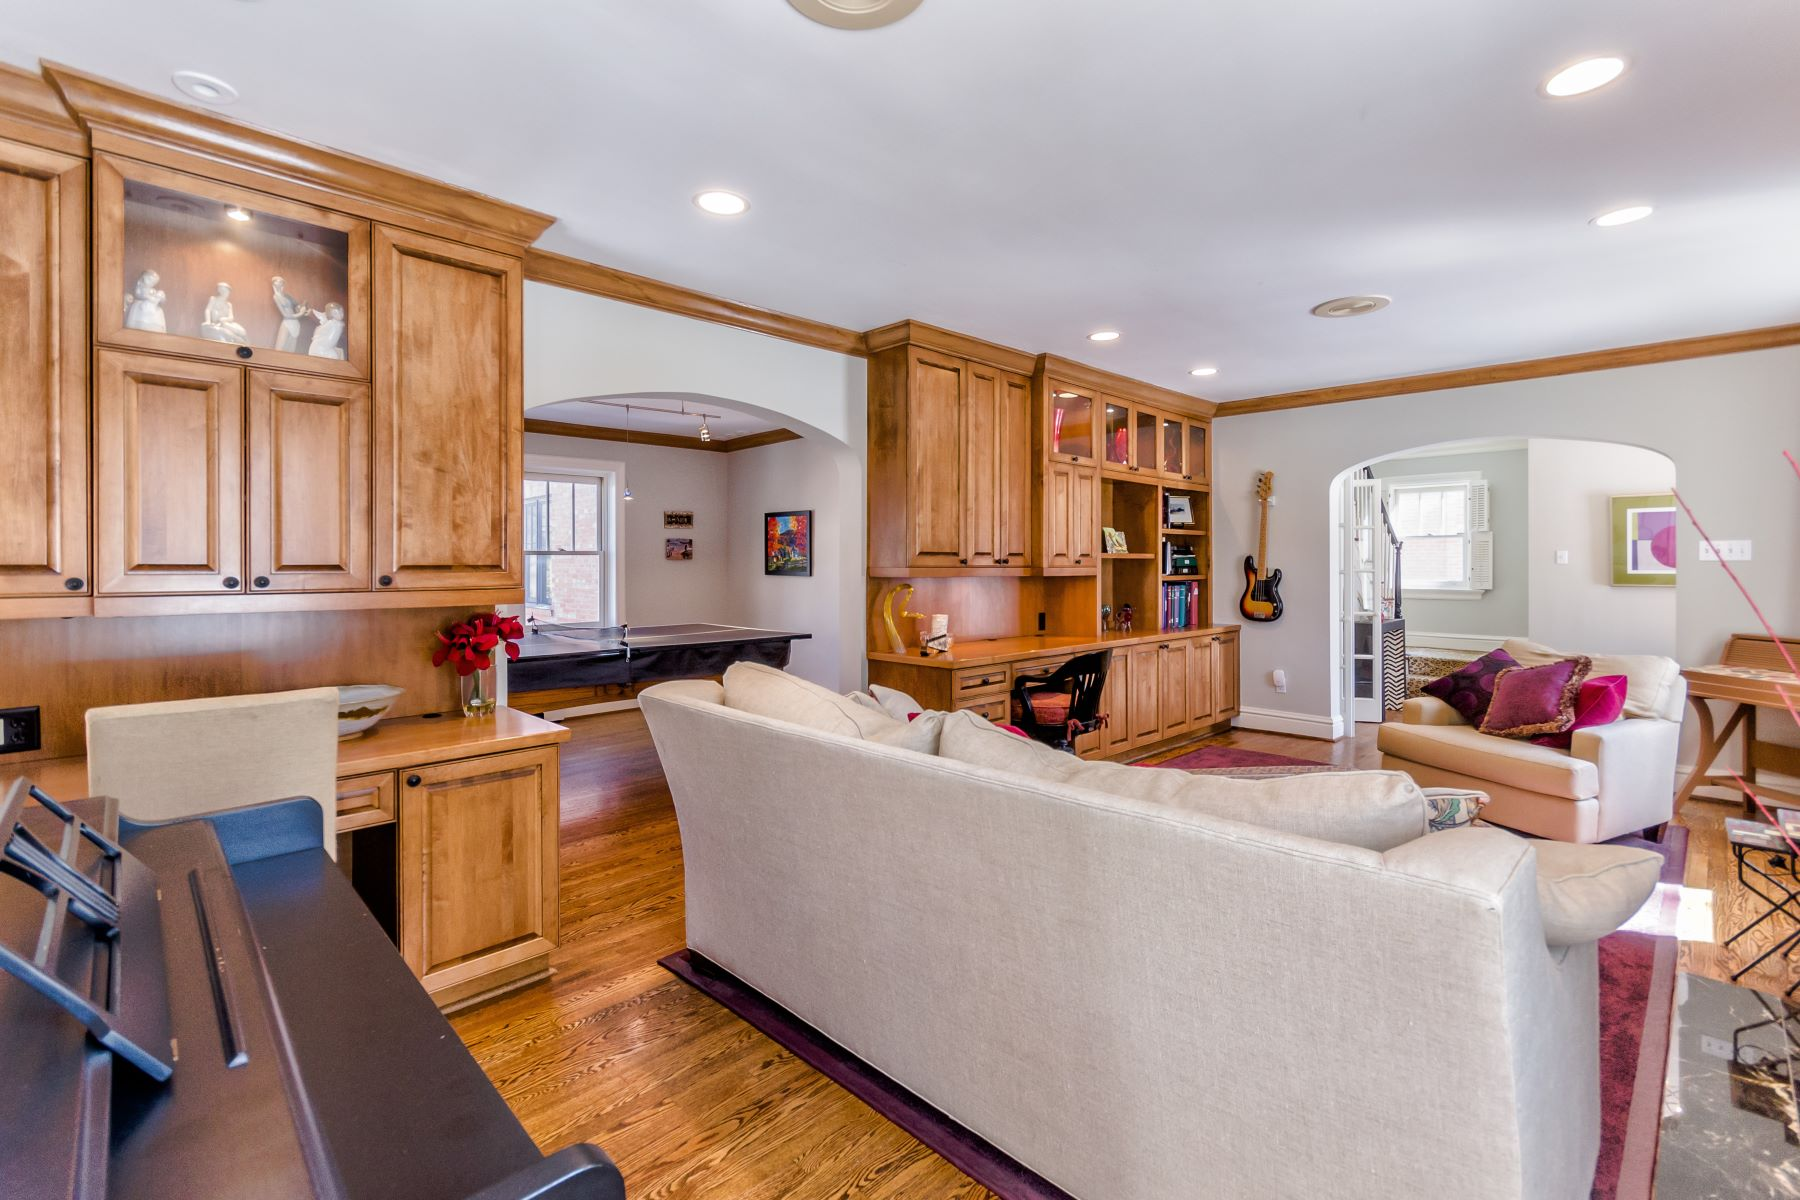 Additional photo for property listing at 8037 Daytona Drive, Clayton, MO 63105 8037 Daytona Drive Clayton, Missouri 63105 United States